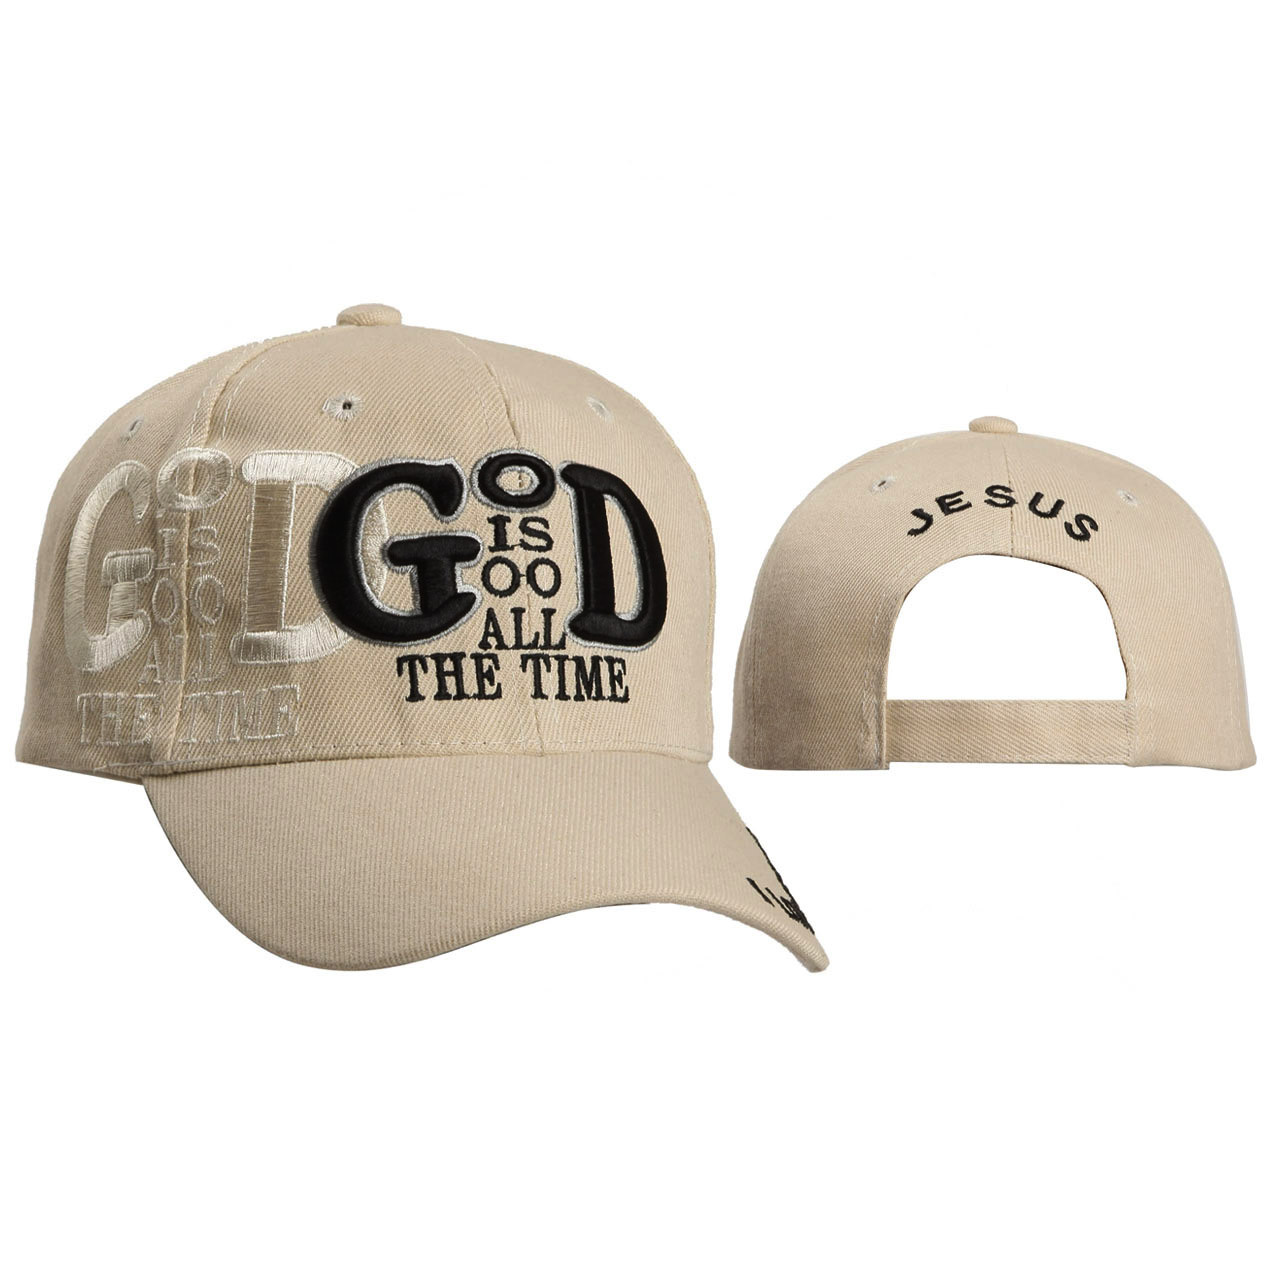 Wholesale Baseball Cap ~ God is Good All the Time ~ Beige